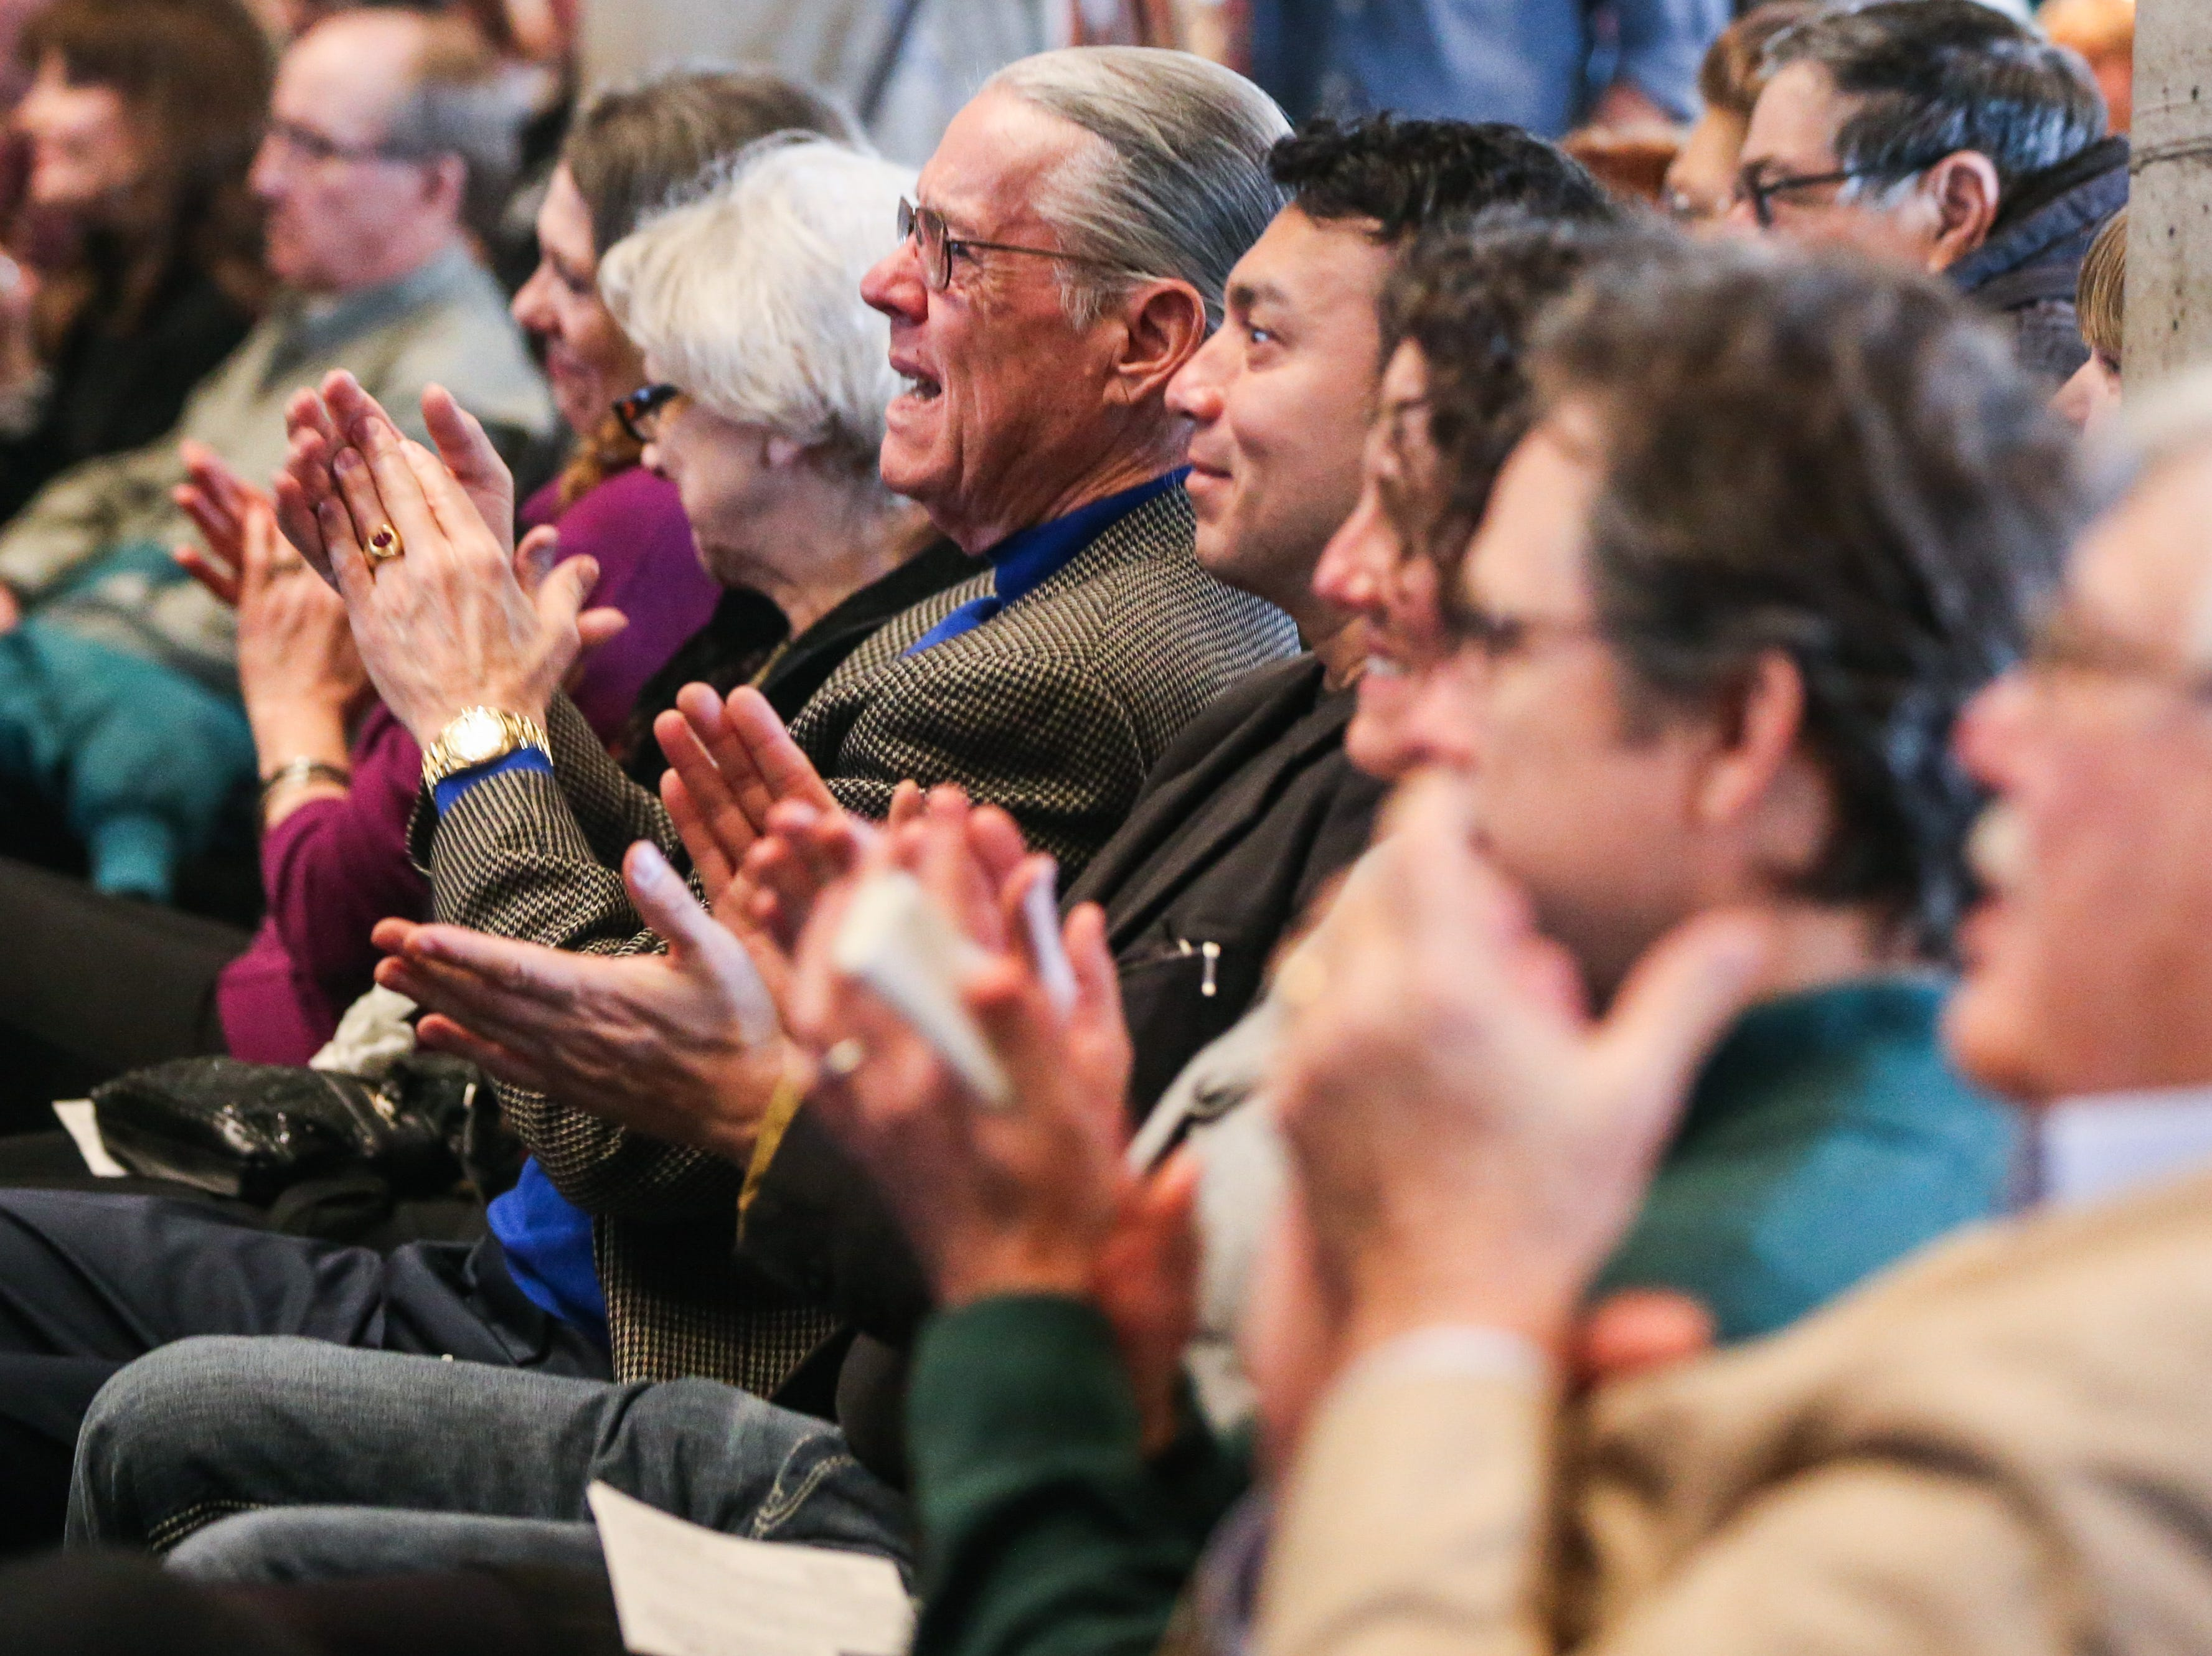 Attendees react to a speaker during the Celebration of Spirit for Roger Allen Sunday, Jan. 13, 2019, at San Angelo Museum of Fine Arts.